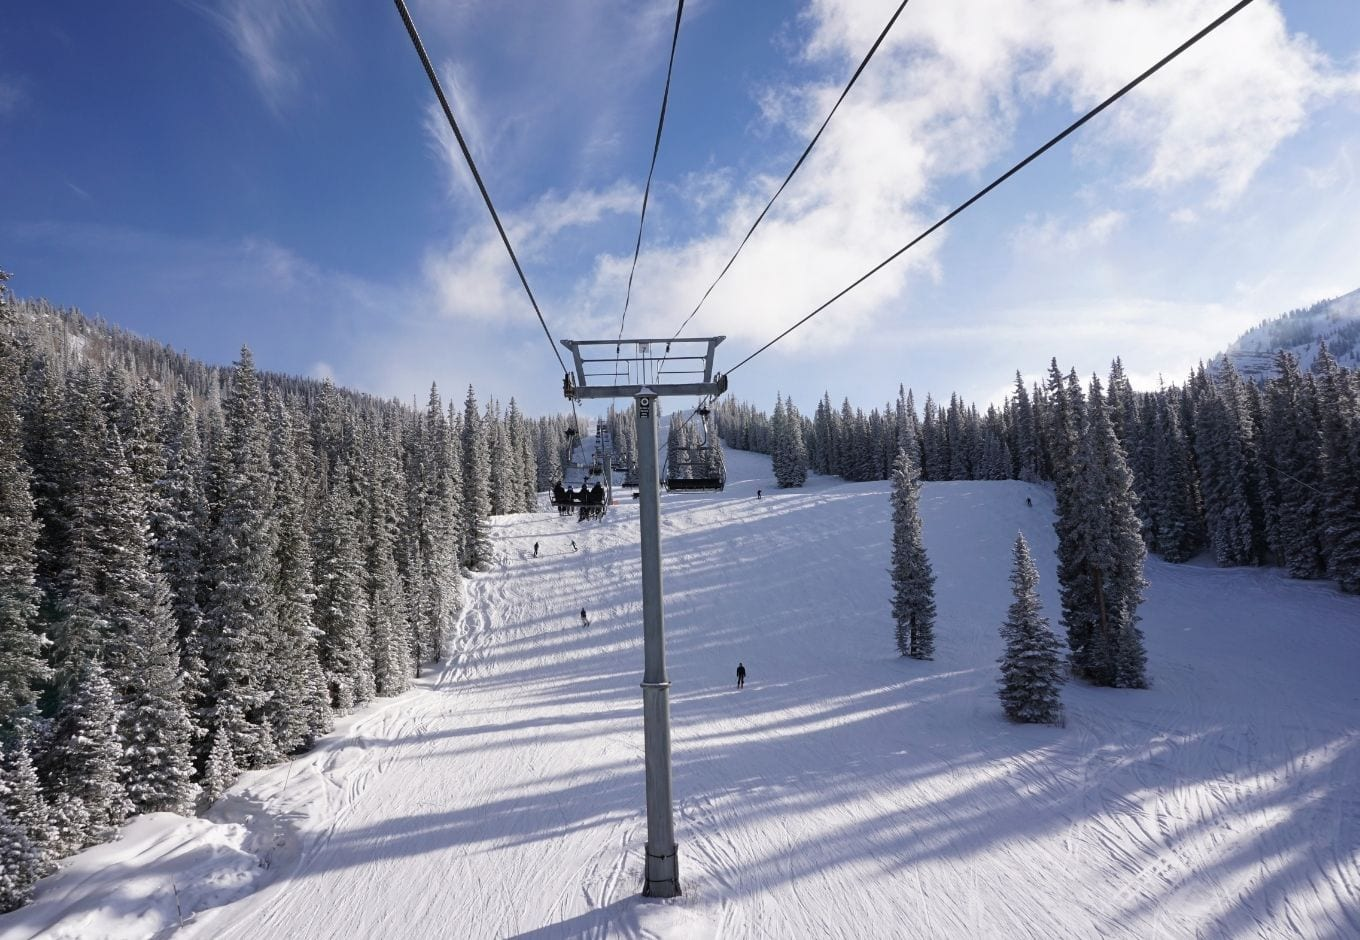 Ski lifts in the snowy mountains of Aspen Snowmass, Colorado.